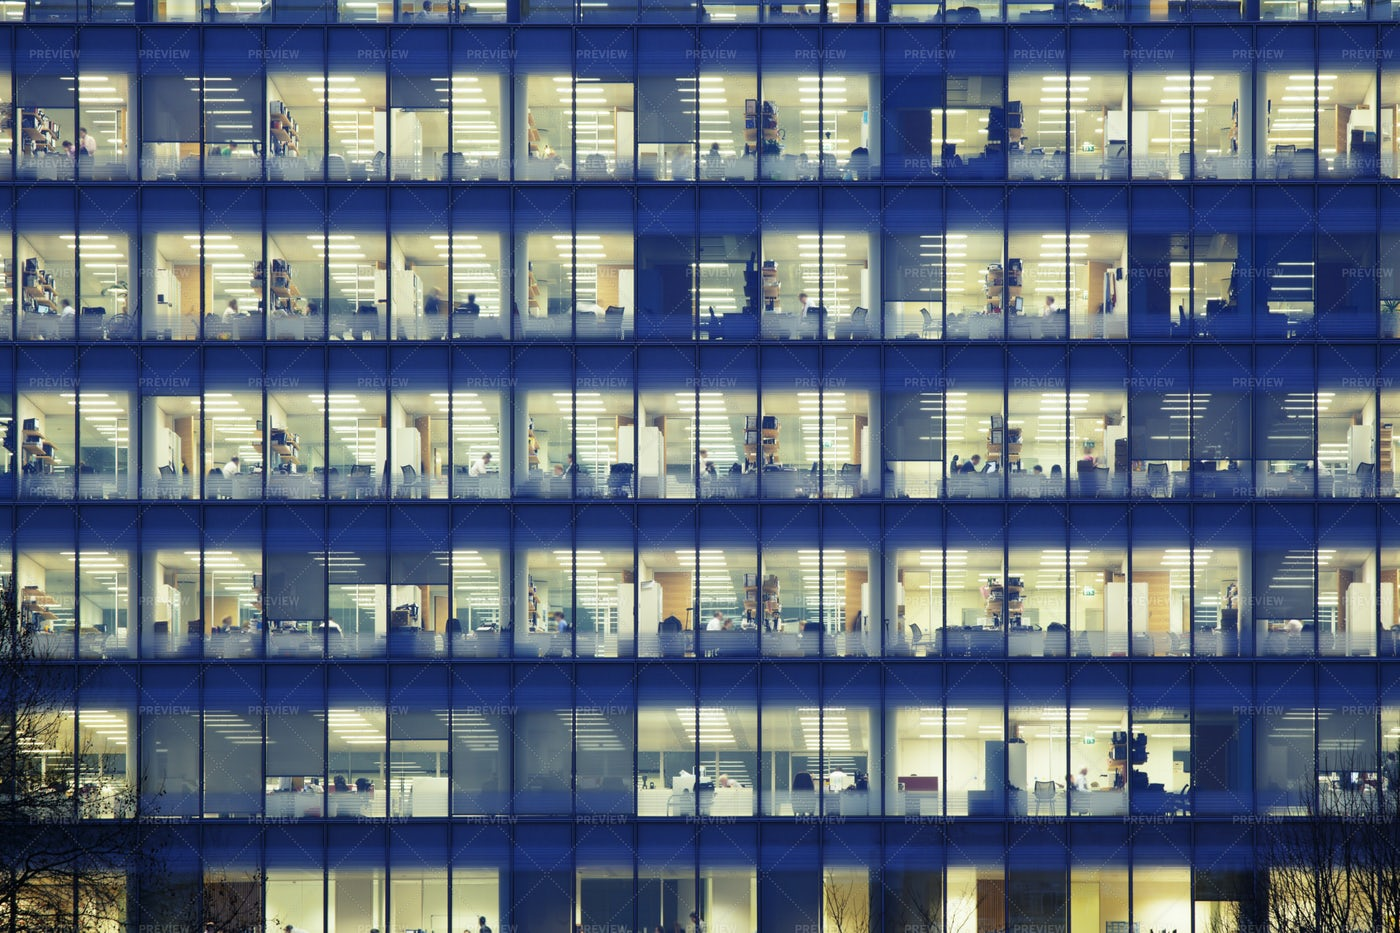 View Of An Office Building: Stock Photos